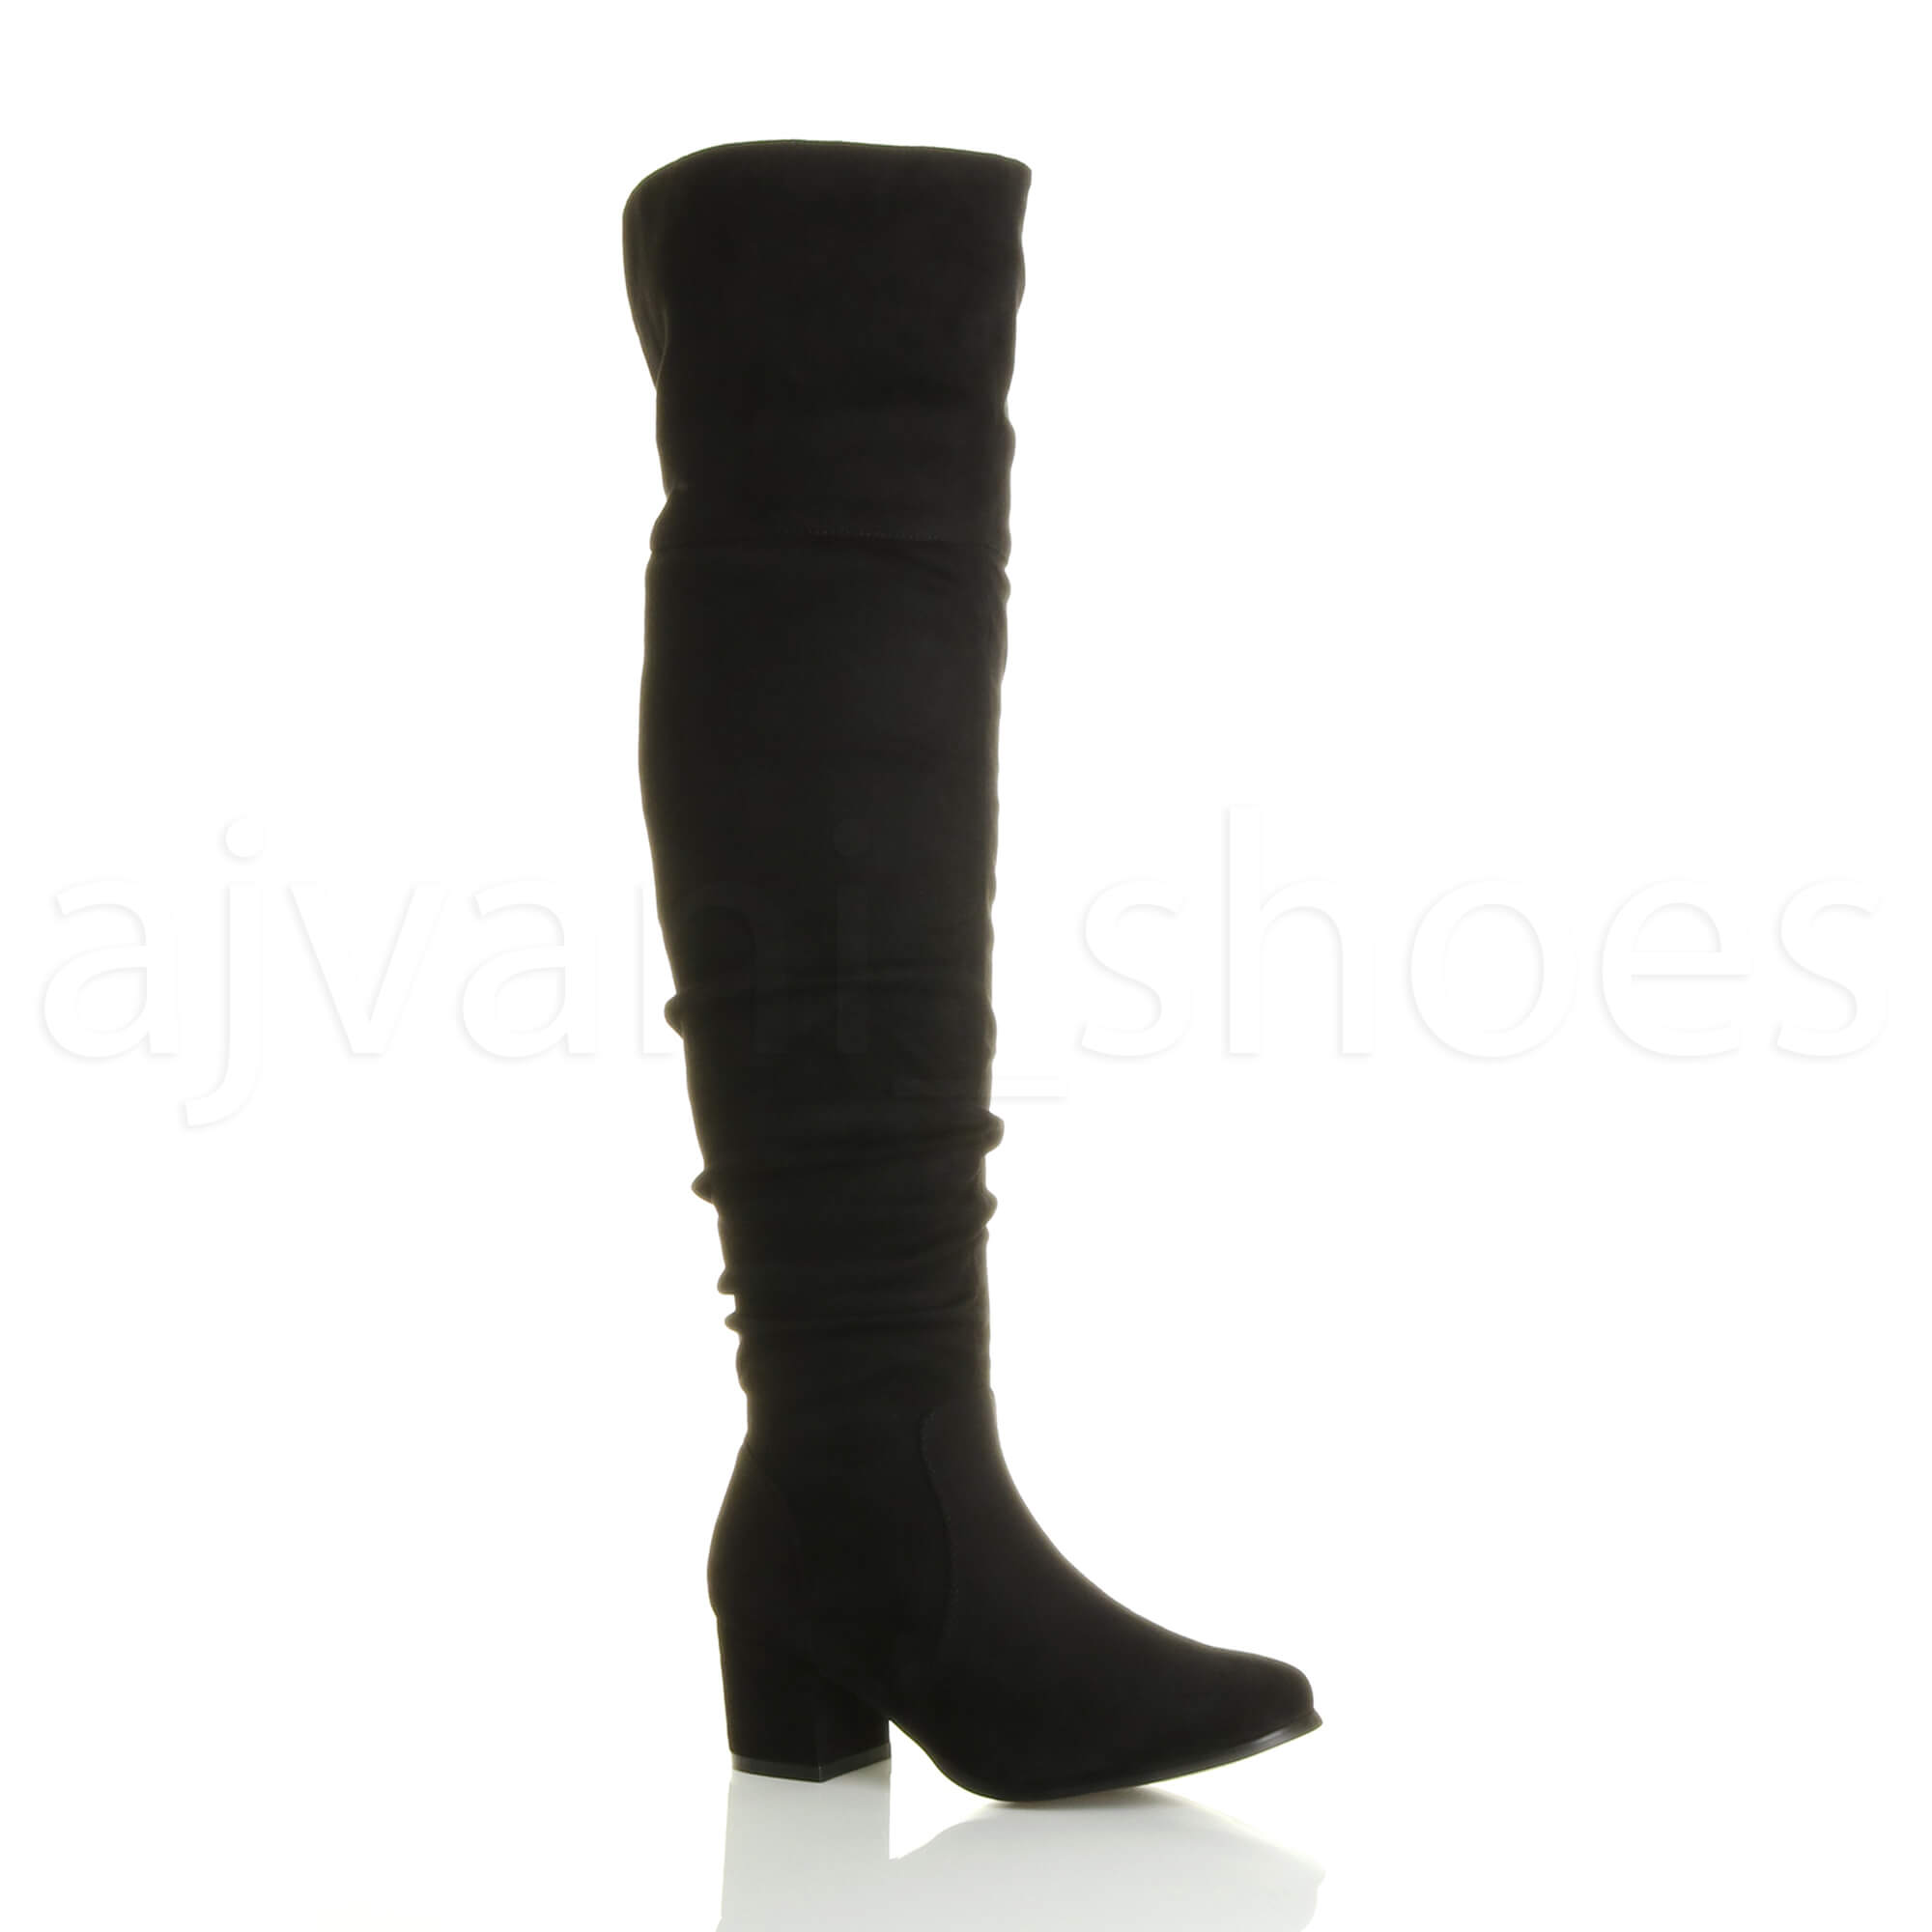 WOMENS-LADIES-LOW-MID-BLOCK-HEEL-THIGH-HIGH-ZIP-RUCHED-OVER-THE-KNEE-BOOTS-SIZE